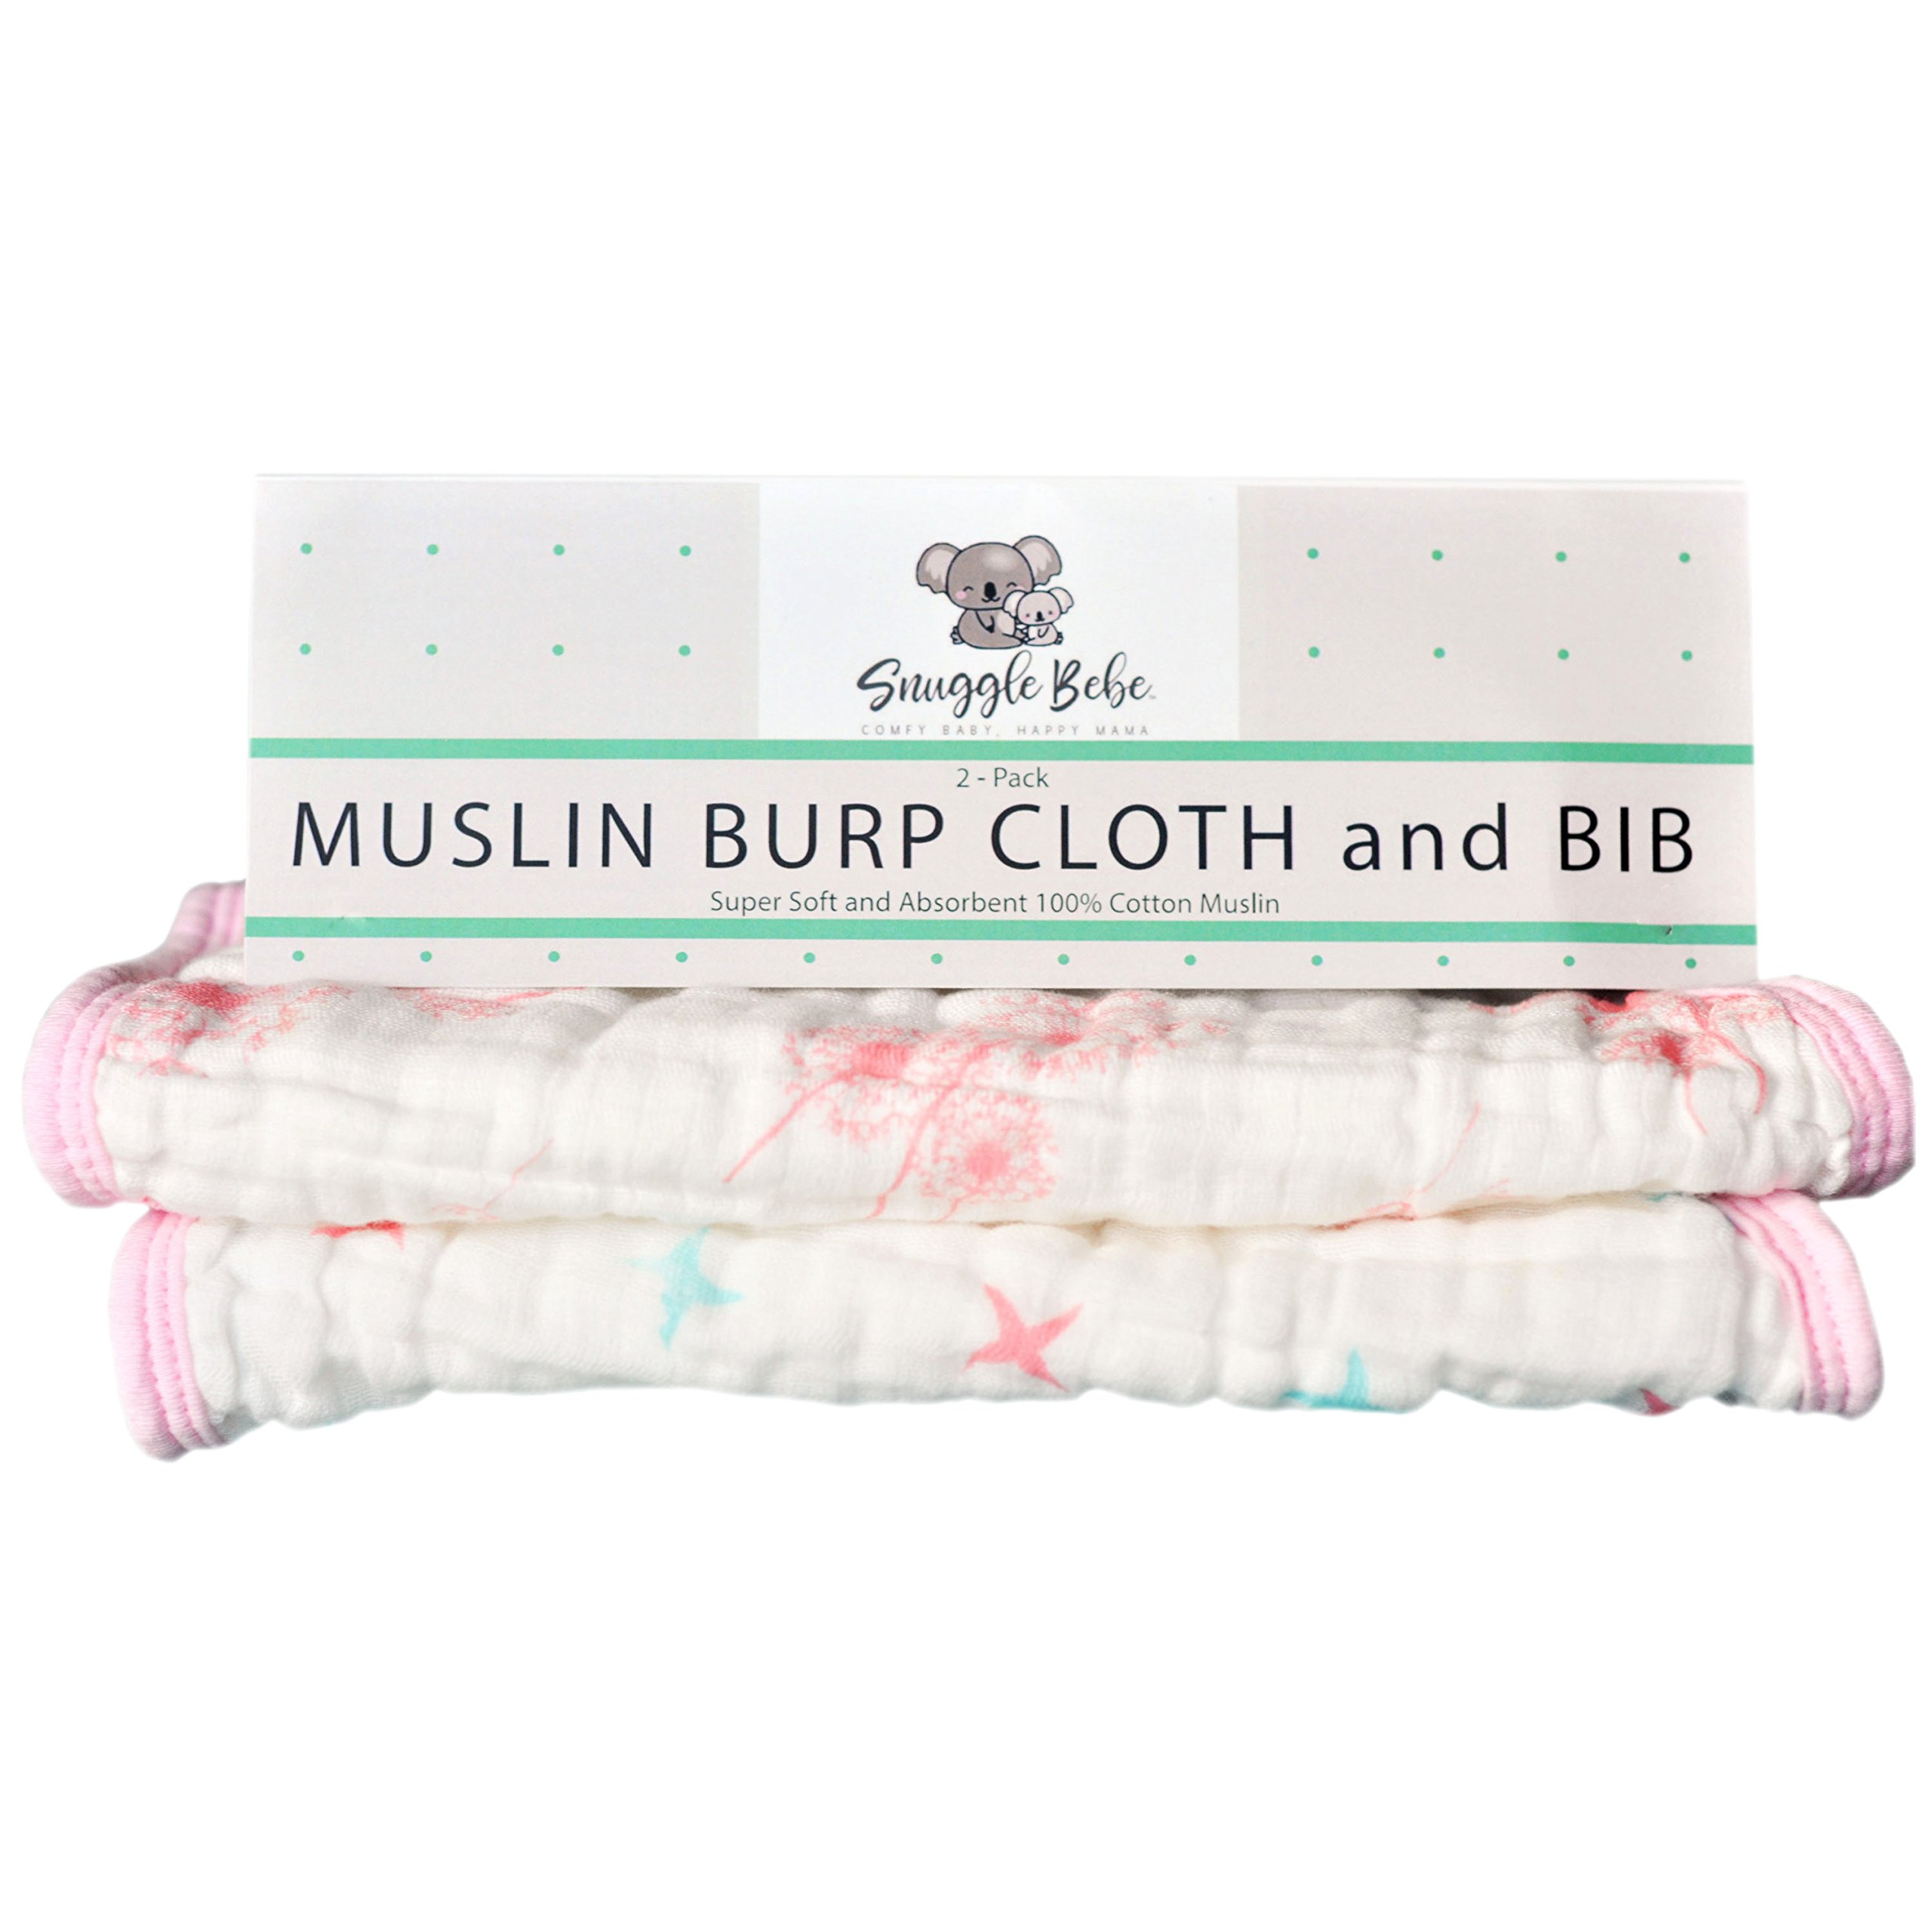 Baby Burp Cloths and Bibs Set for Girls - 2 Pack - Large, Absorbent, Soft 100% Cotton Muslin Burping Cloths for Newborns, Infants and Teething Toddlers - Snuggle Bebe